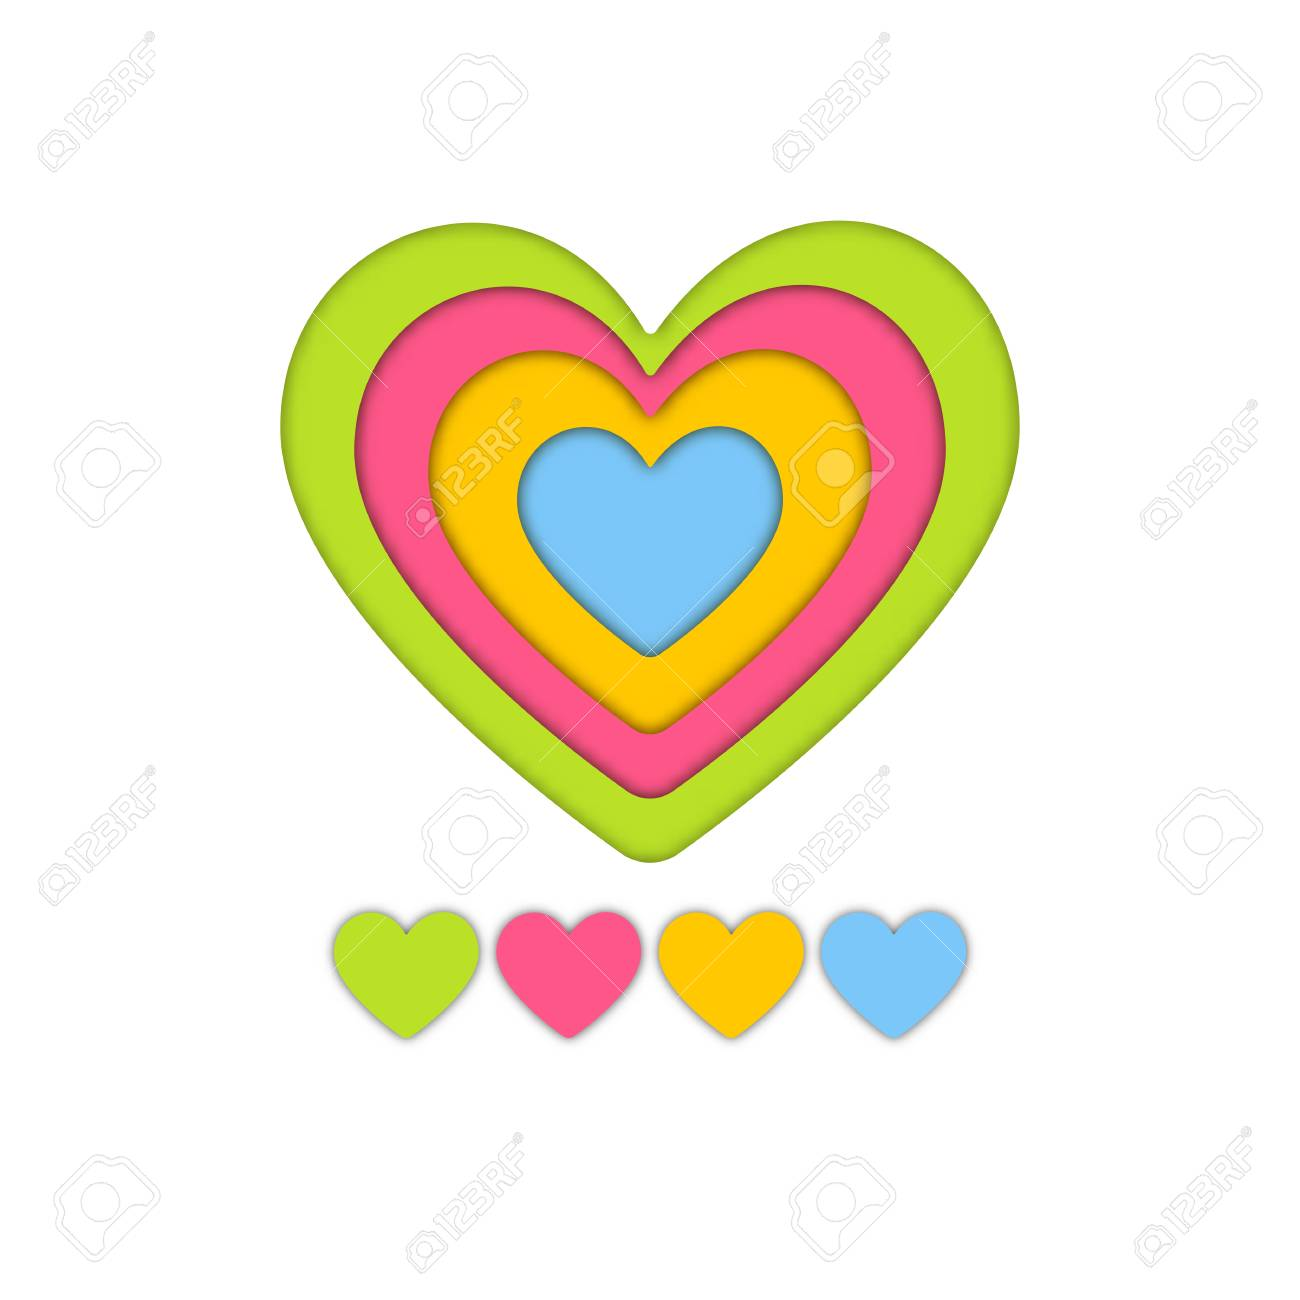 Colorful Layer Art Paper Craft Of Heart For Valentine Graphic